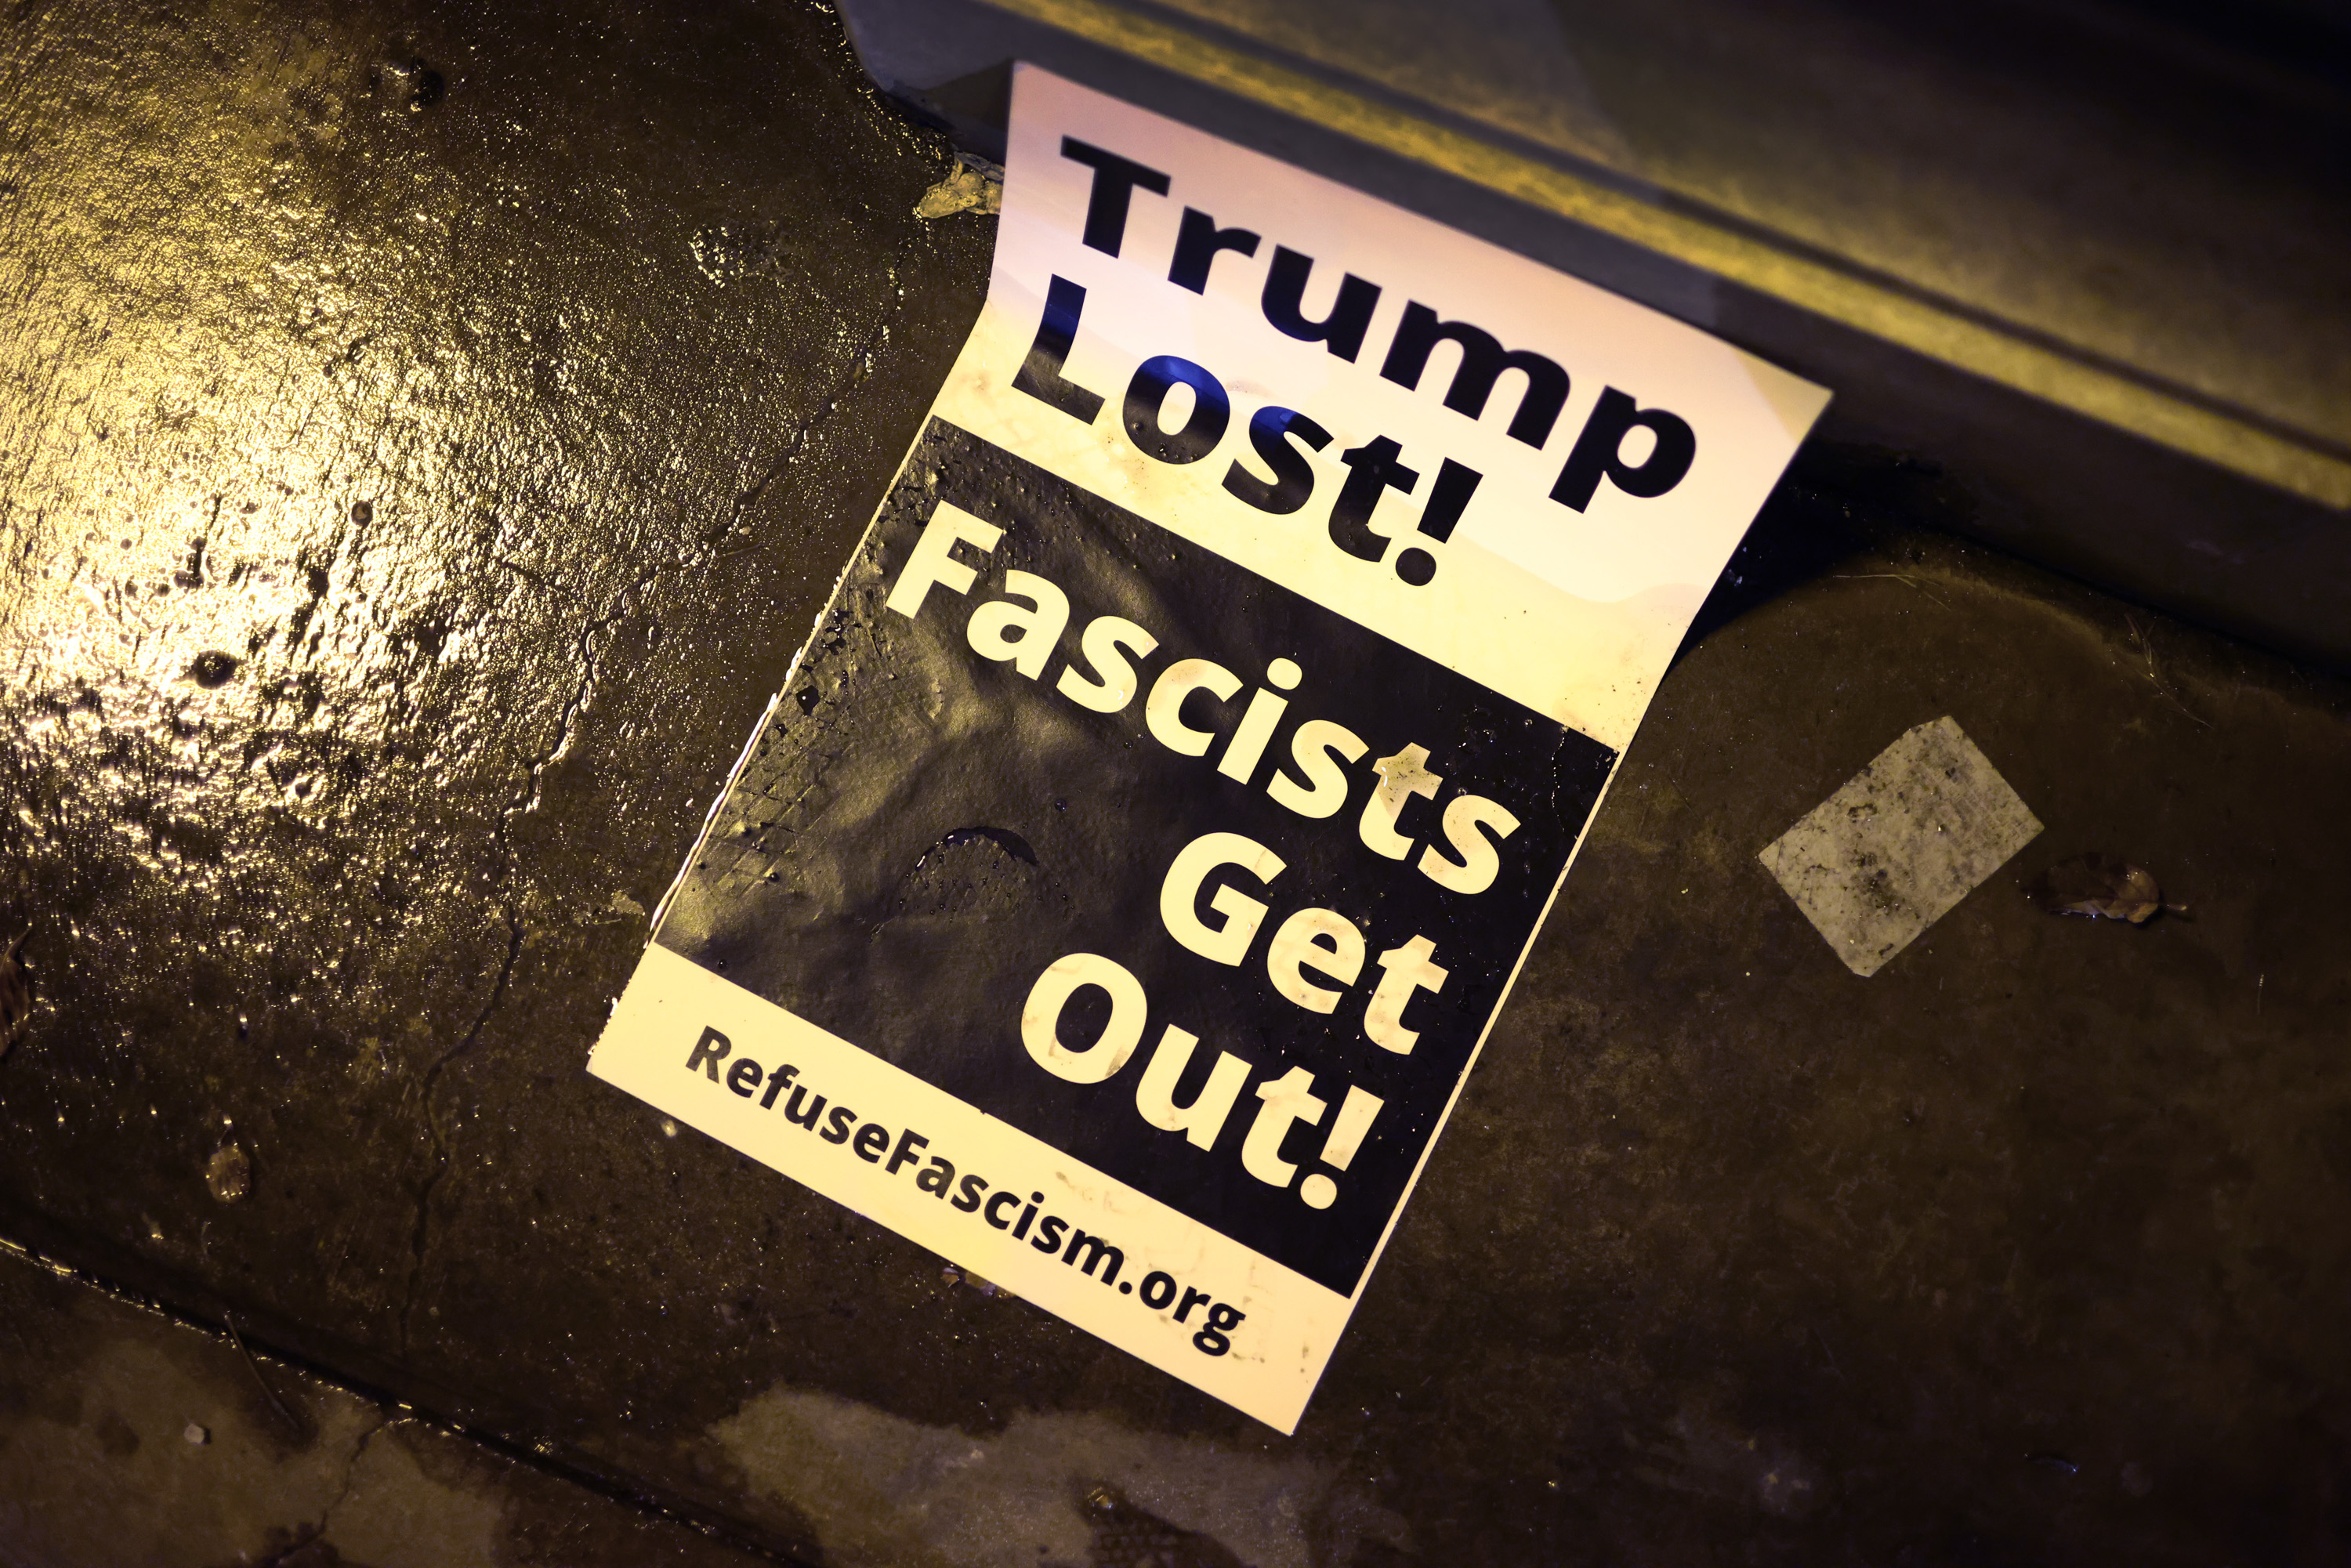 CHICAGO, ILLINOIS - JANUARY 07: A protest sign rests on the ground near a small group of demonstrators protesting near Trump Tower on January 07, 2021 in Chicago, Illinois. Protesters called for the removal of President Donald Trump from office after a pro-Trump mob stormed the Capitol building in Washington, DC yesterday as lawmakers met to count the Electoral College votes in the presidential election.  (Photo by Scott Olson/Getty Images)